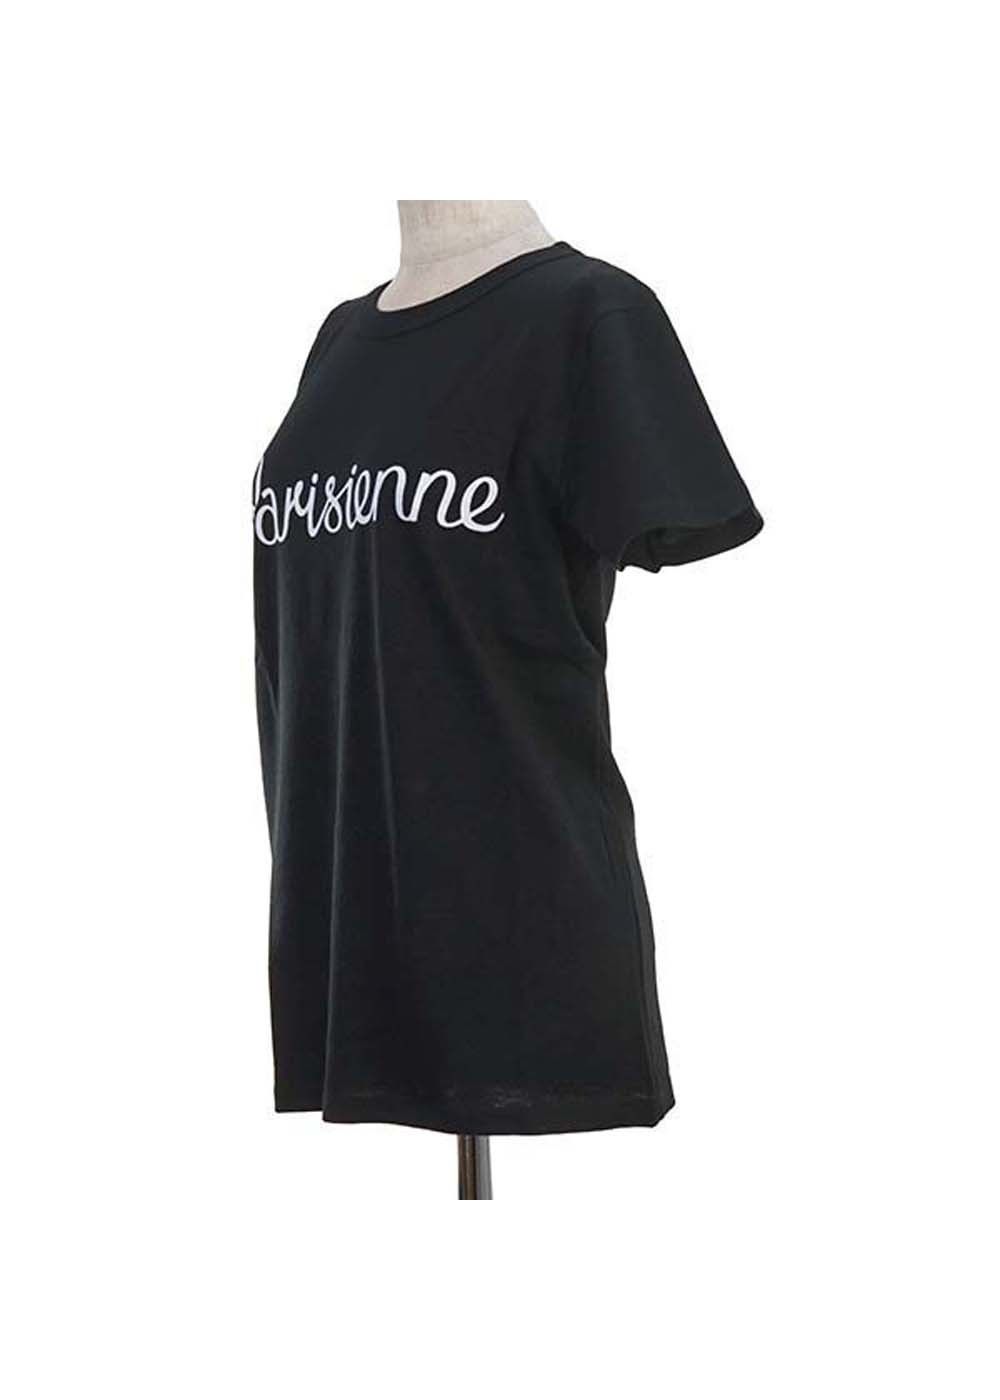 【最大35%OFF】TEE-SHIRT PARISIENNE|BLACK|Tシャツ|MAISON KITSUNE(C)